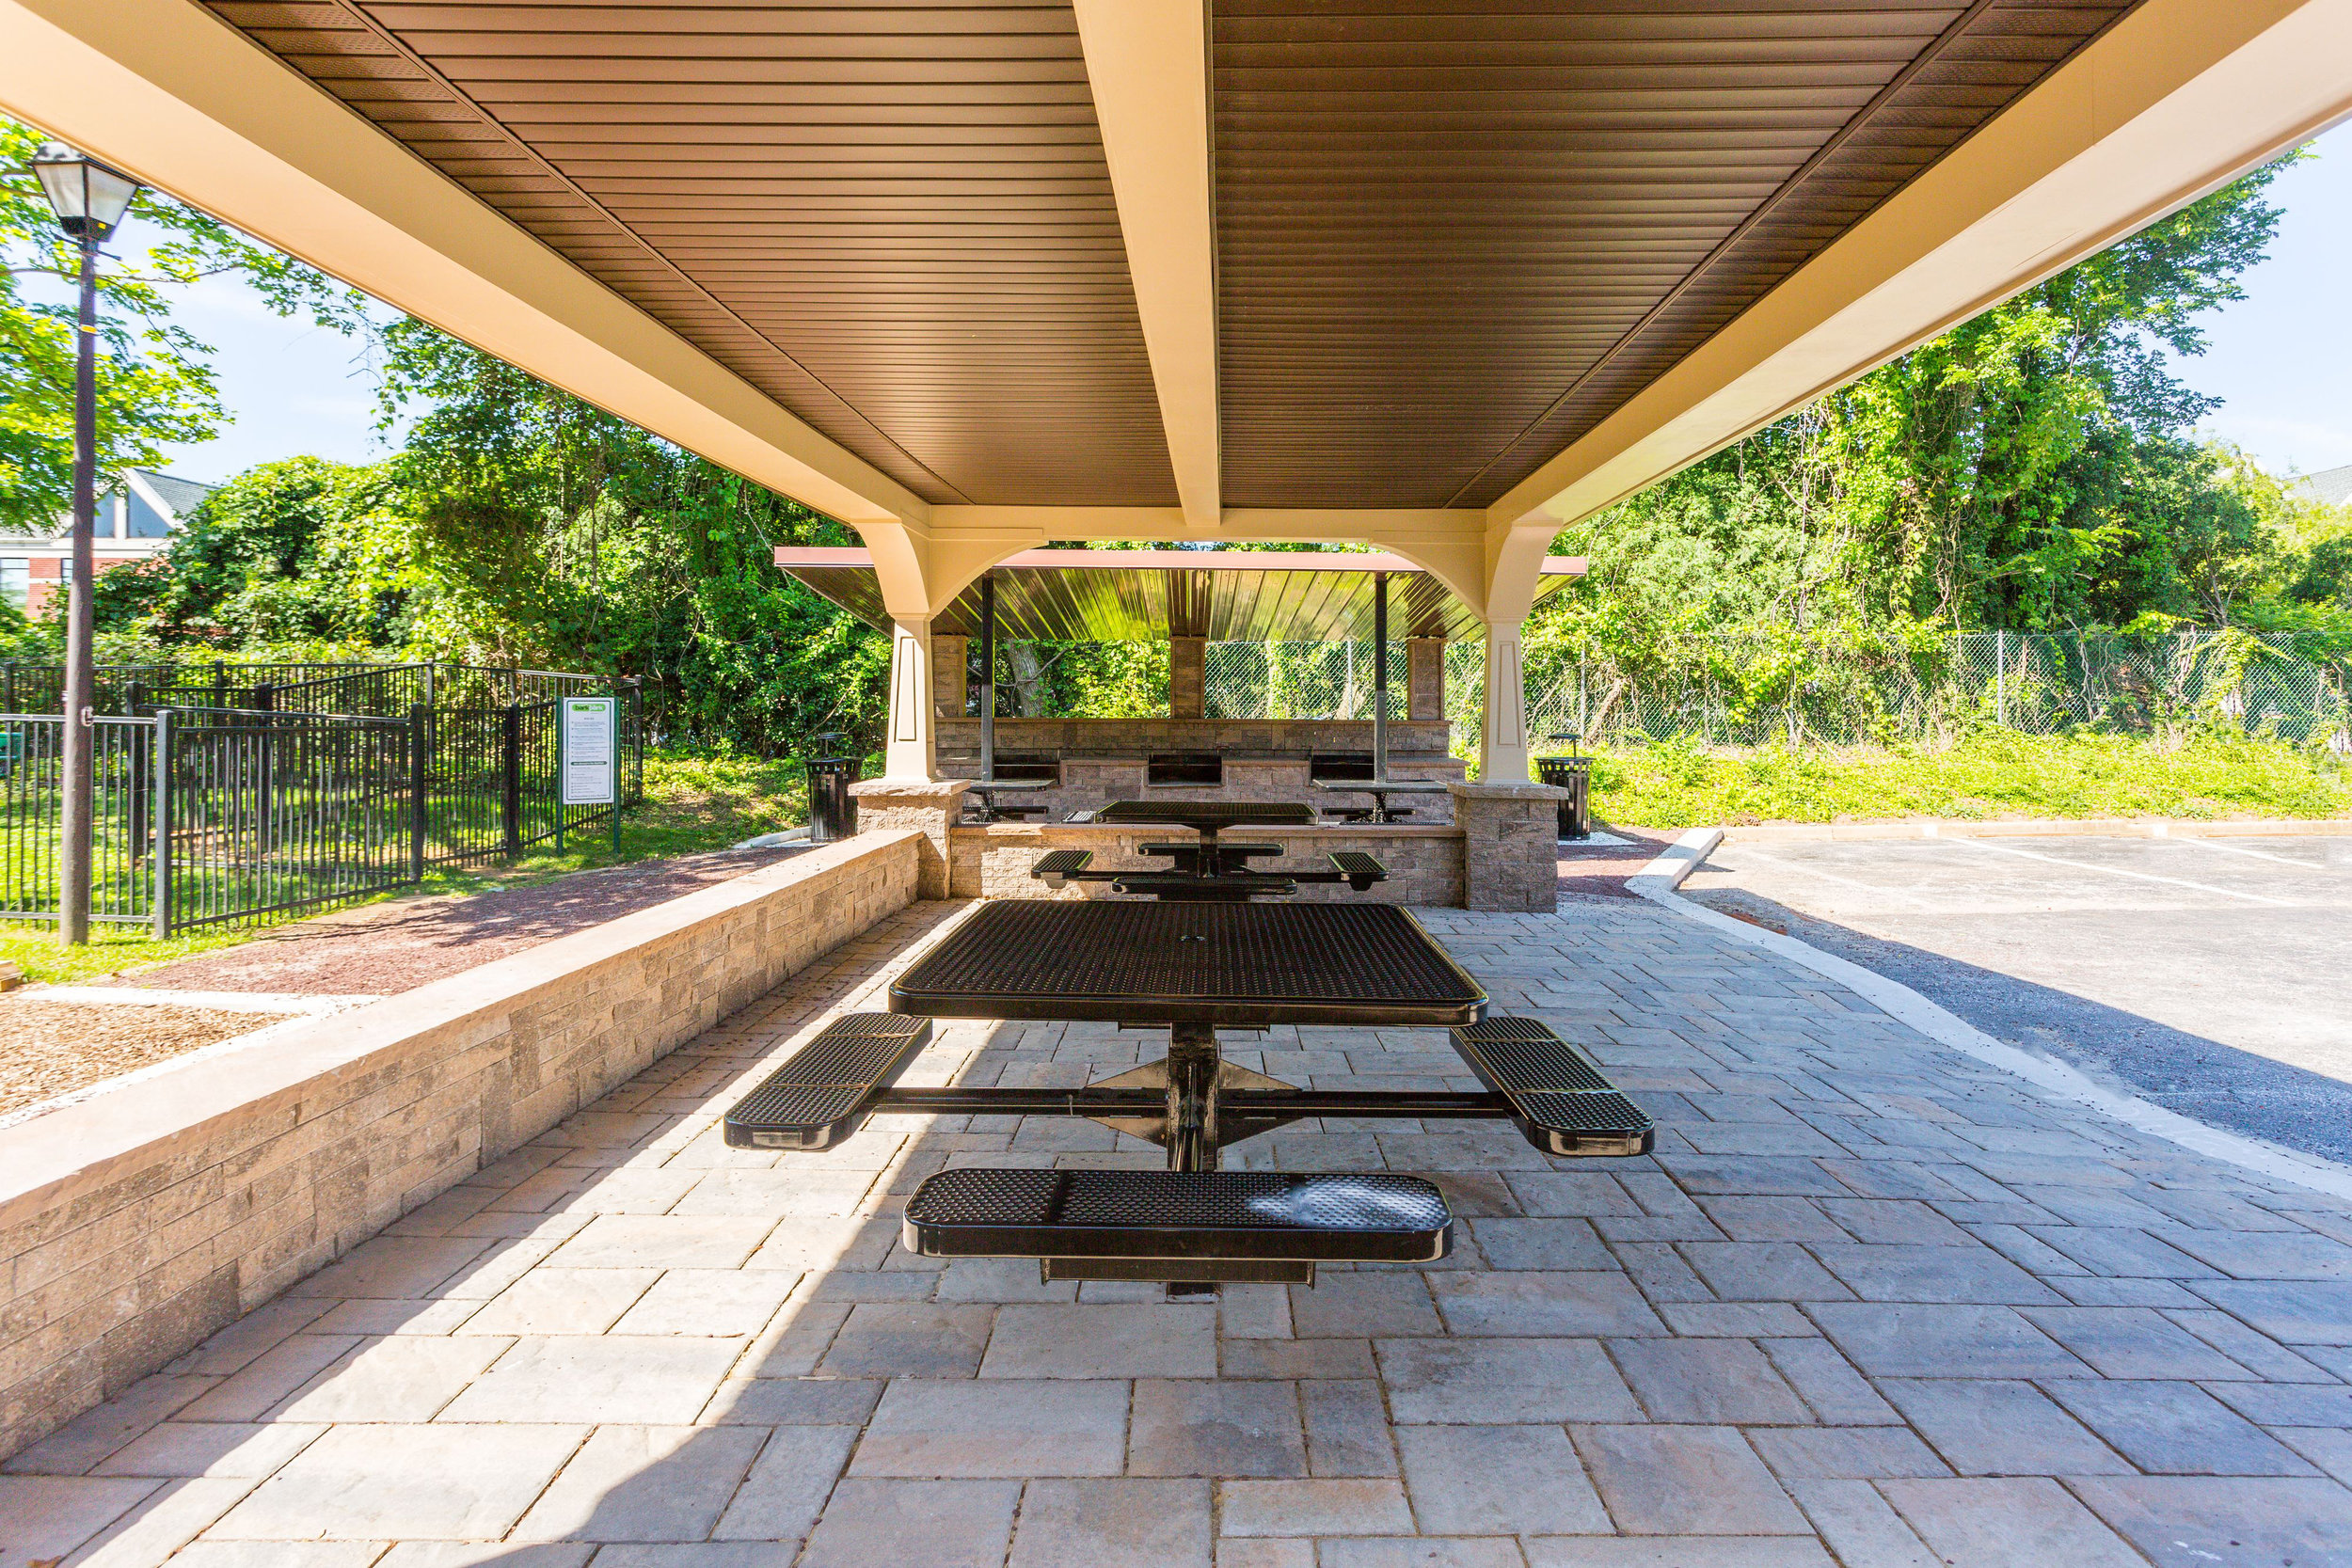 Outdoor Grilling & Dining Area at Annen Woods Apartments in Pikesville, MD